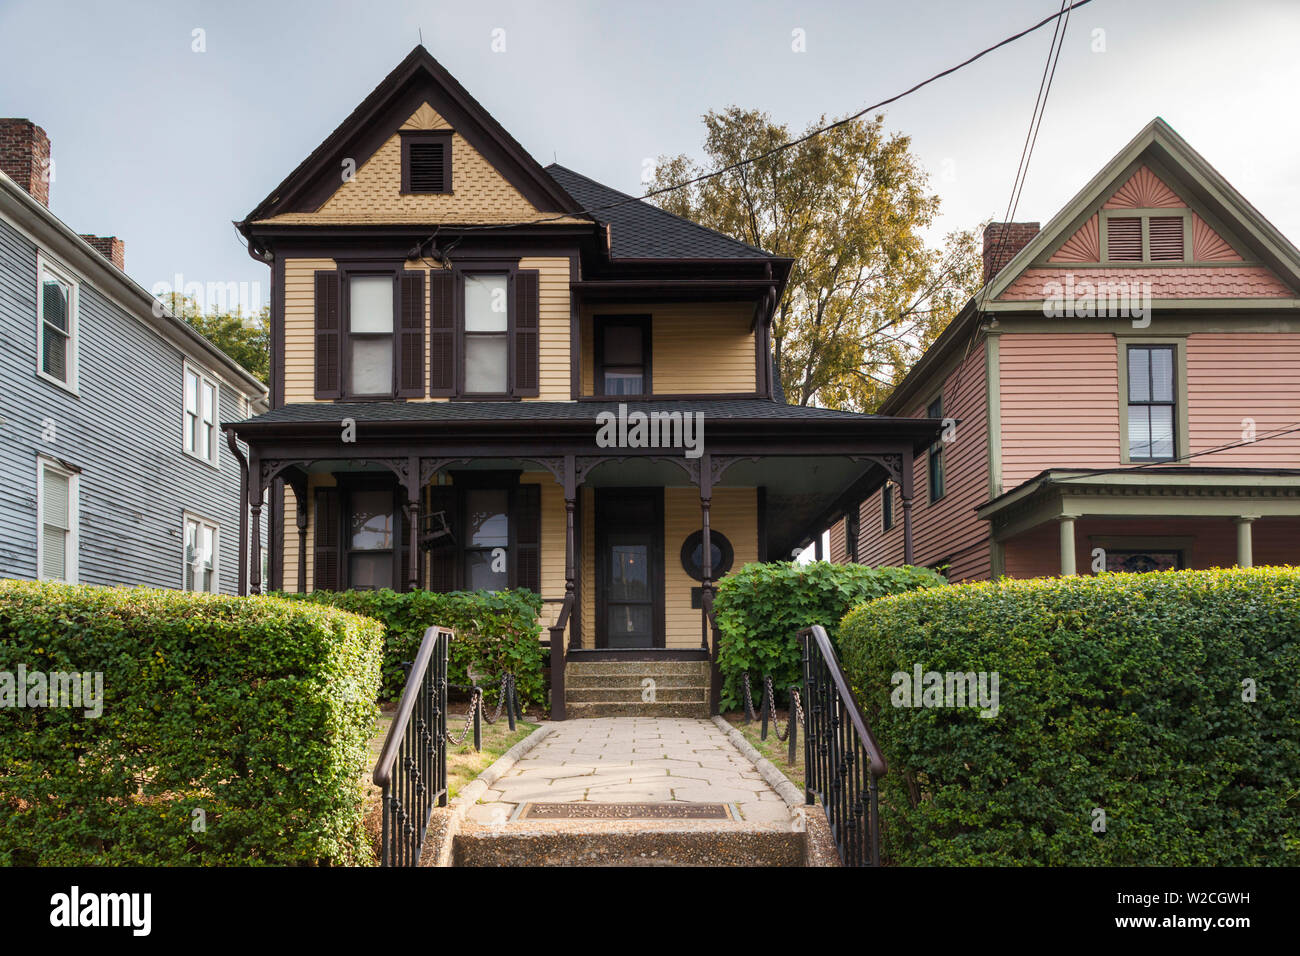 USA, Georgia, Atlanta, Martin Luther King National Historic Site, birthplace of Rev. Martin Luther King, King family home - Stock Image